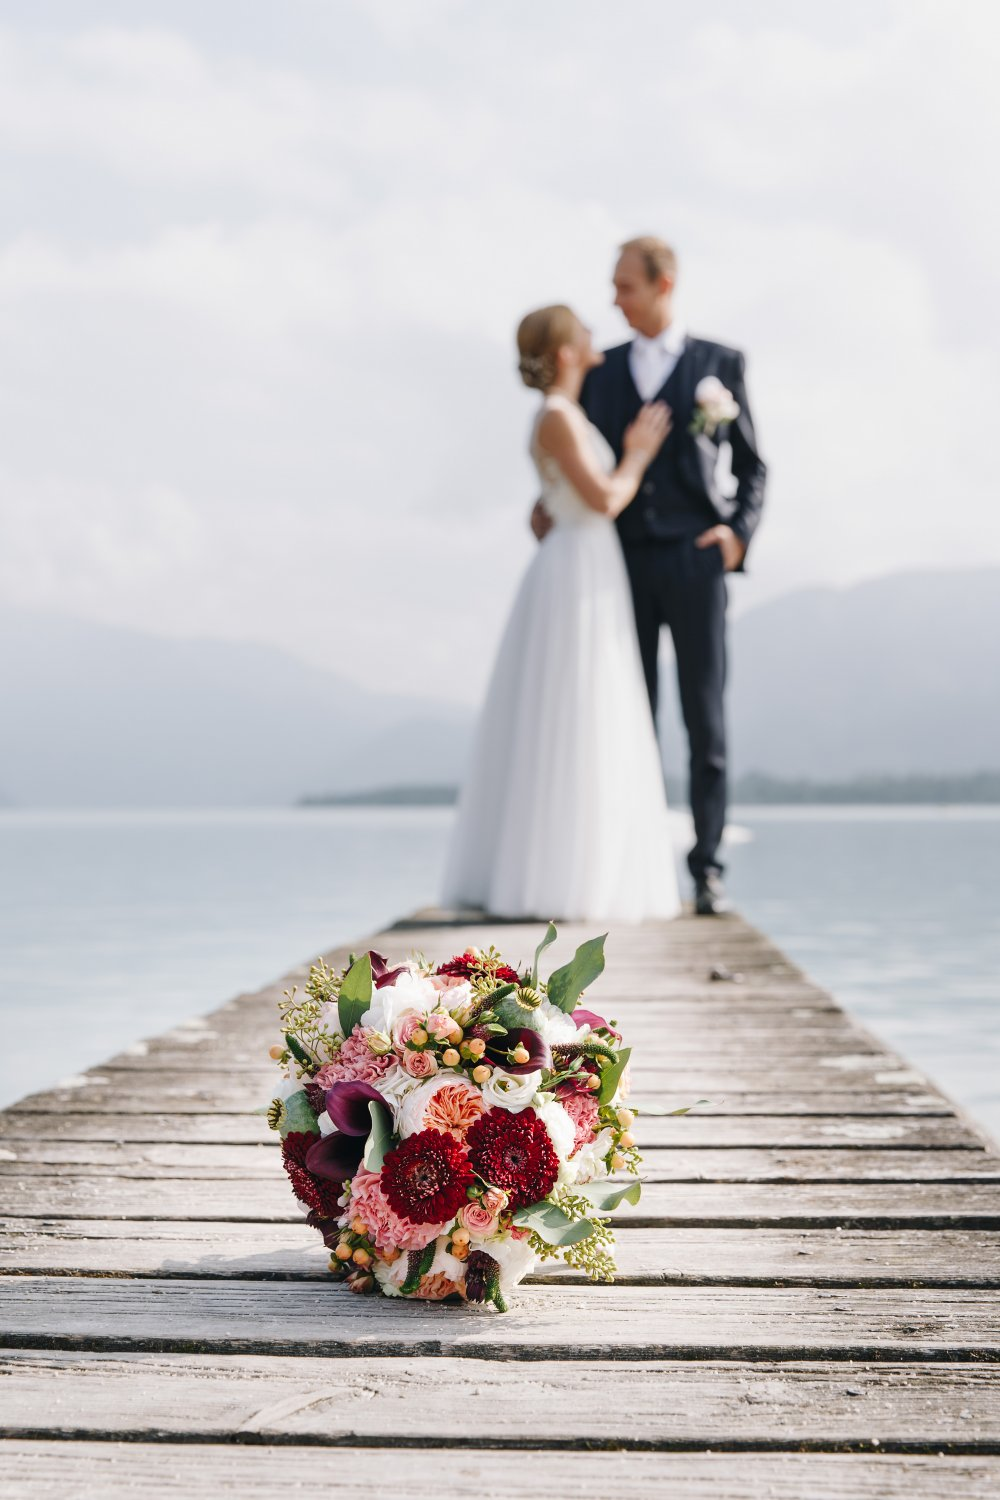 Salzkammergut Wedding Schlosshotel Mondsee couple bouquet